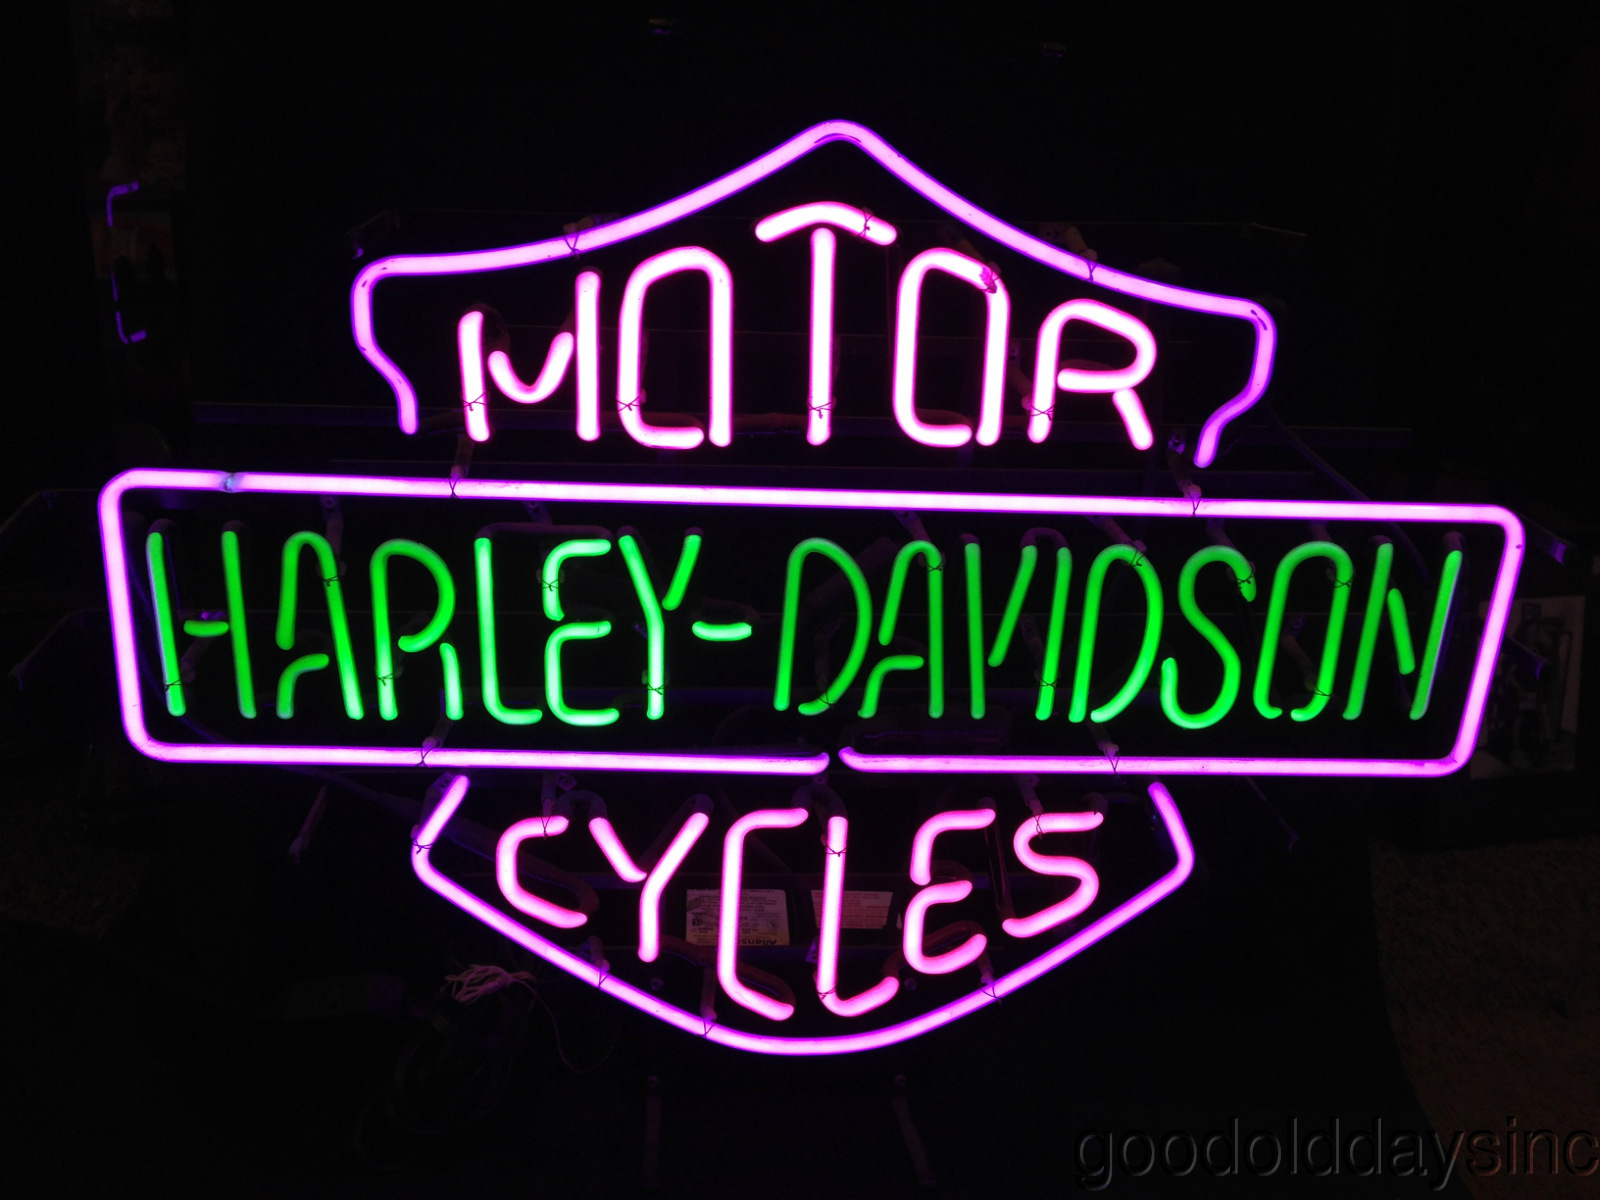 Harley Davidson Neon Sign - Light